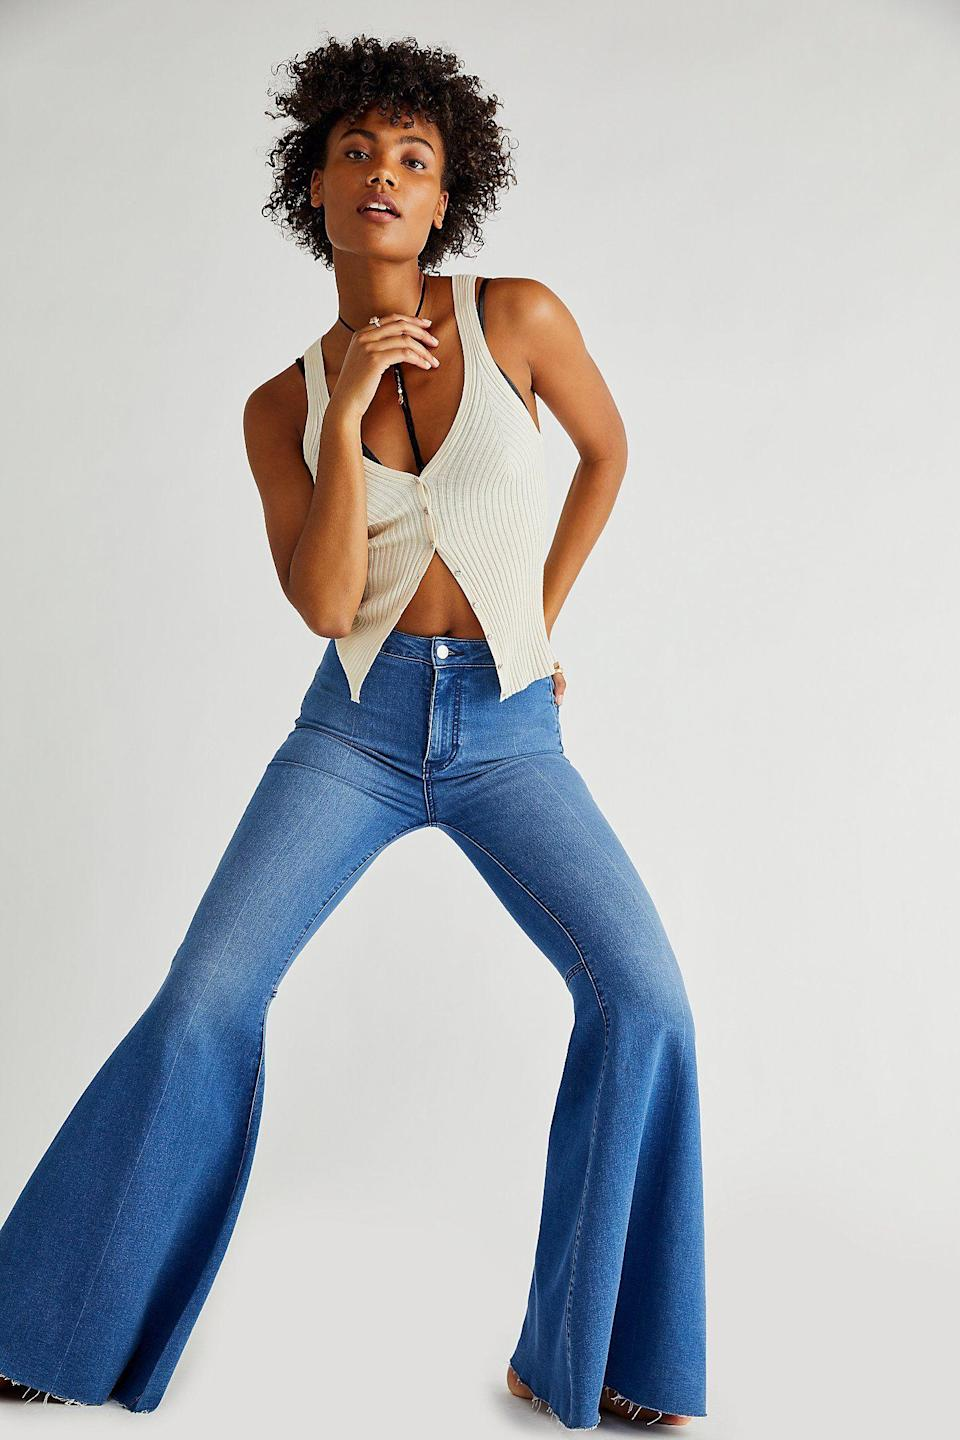 """<p><strong>Free People</strong></p><p>freepeople.com</p><p><strong>$78.00</strong></p><p><a href=""""https://go.redirectingat.com?id=74968X1596630&url=https%3A%2F%2Fwww.freepeople.com%2Fshop%2Fjust-float-on-flare-jeans%2F&sref=https%3A%2F%2Fwww.goodhousekeeping.com%2Fholidays%2Fhalloween-ideas%2Fg27952017%2Fbest-hippie-halloween-costume-ideas%2F"""" rel=""""nofollow noopener"""" target=""""_blank"""" data-ylk=""""slk:Shop Now"""" class=""""link rapid-noclick-resp"""">Shop Now</a></p><p>If you're a fan of the bell bottom jeans look, try this stylish update. Save them for after Halloween, because they're cute enough to wear all year.</p>"""